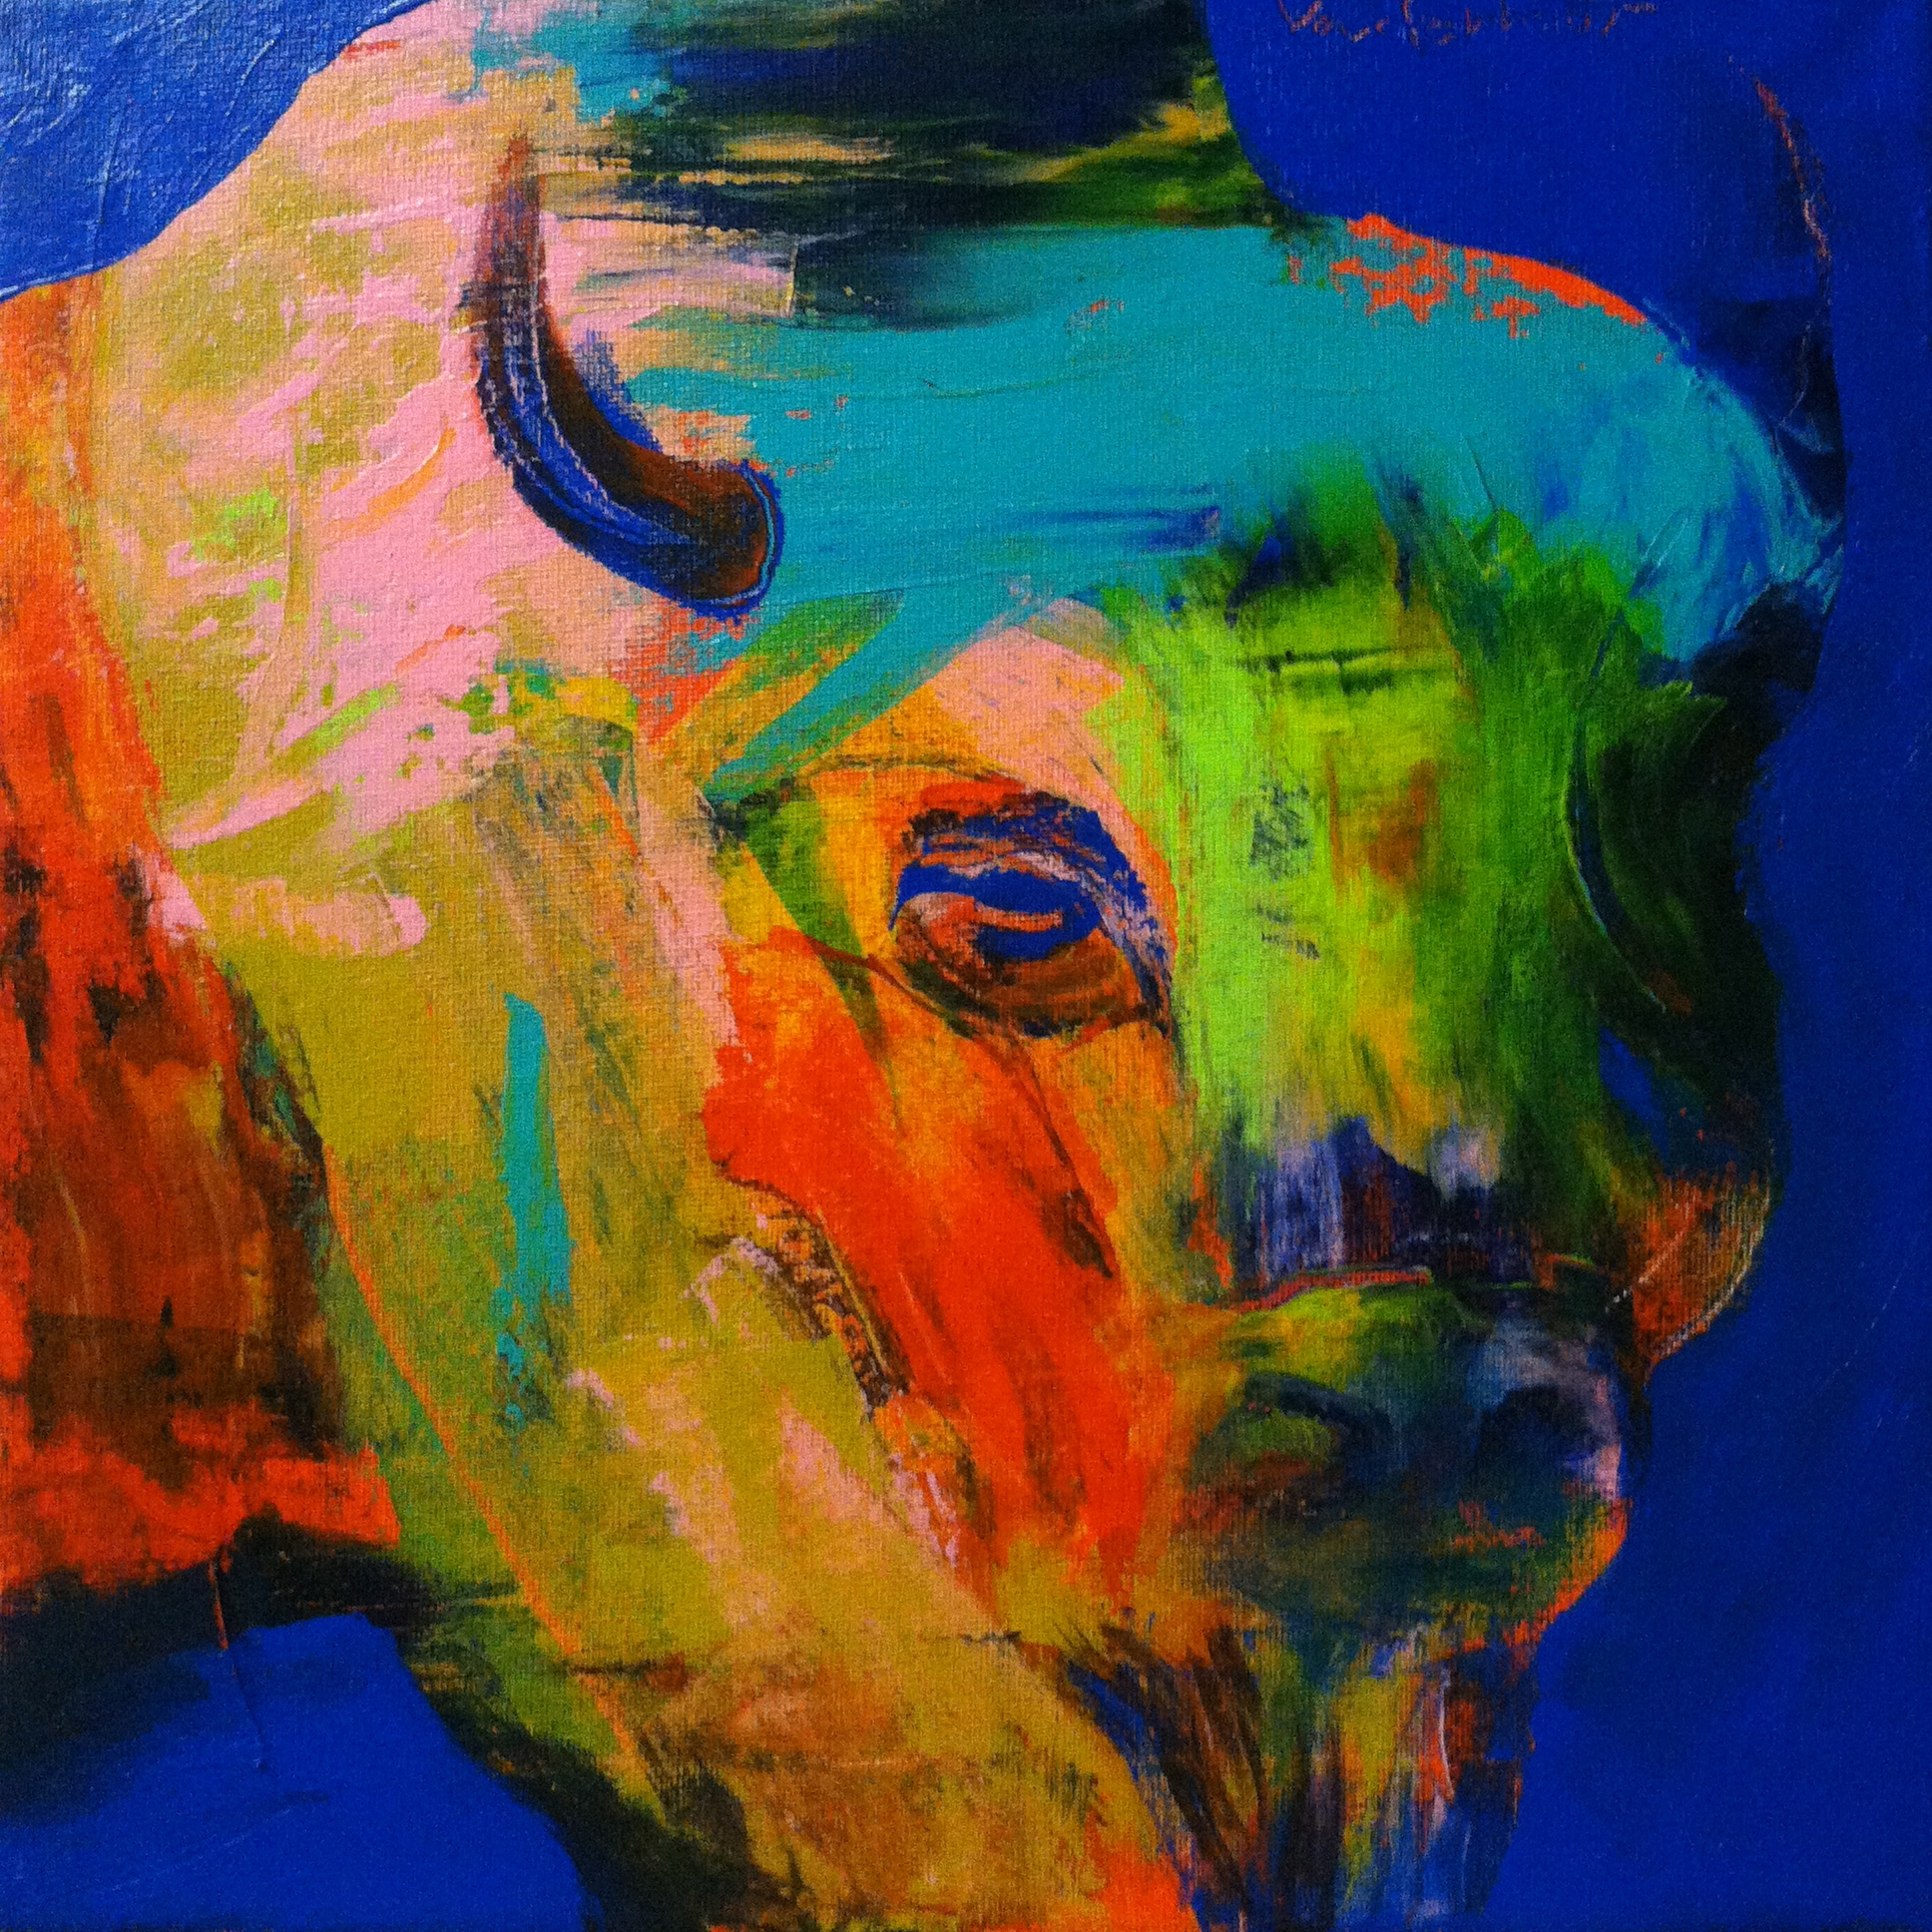 Bison #9, acrylic on canvas, 12x12 inches, 2015